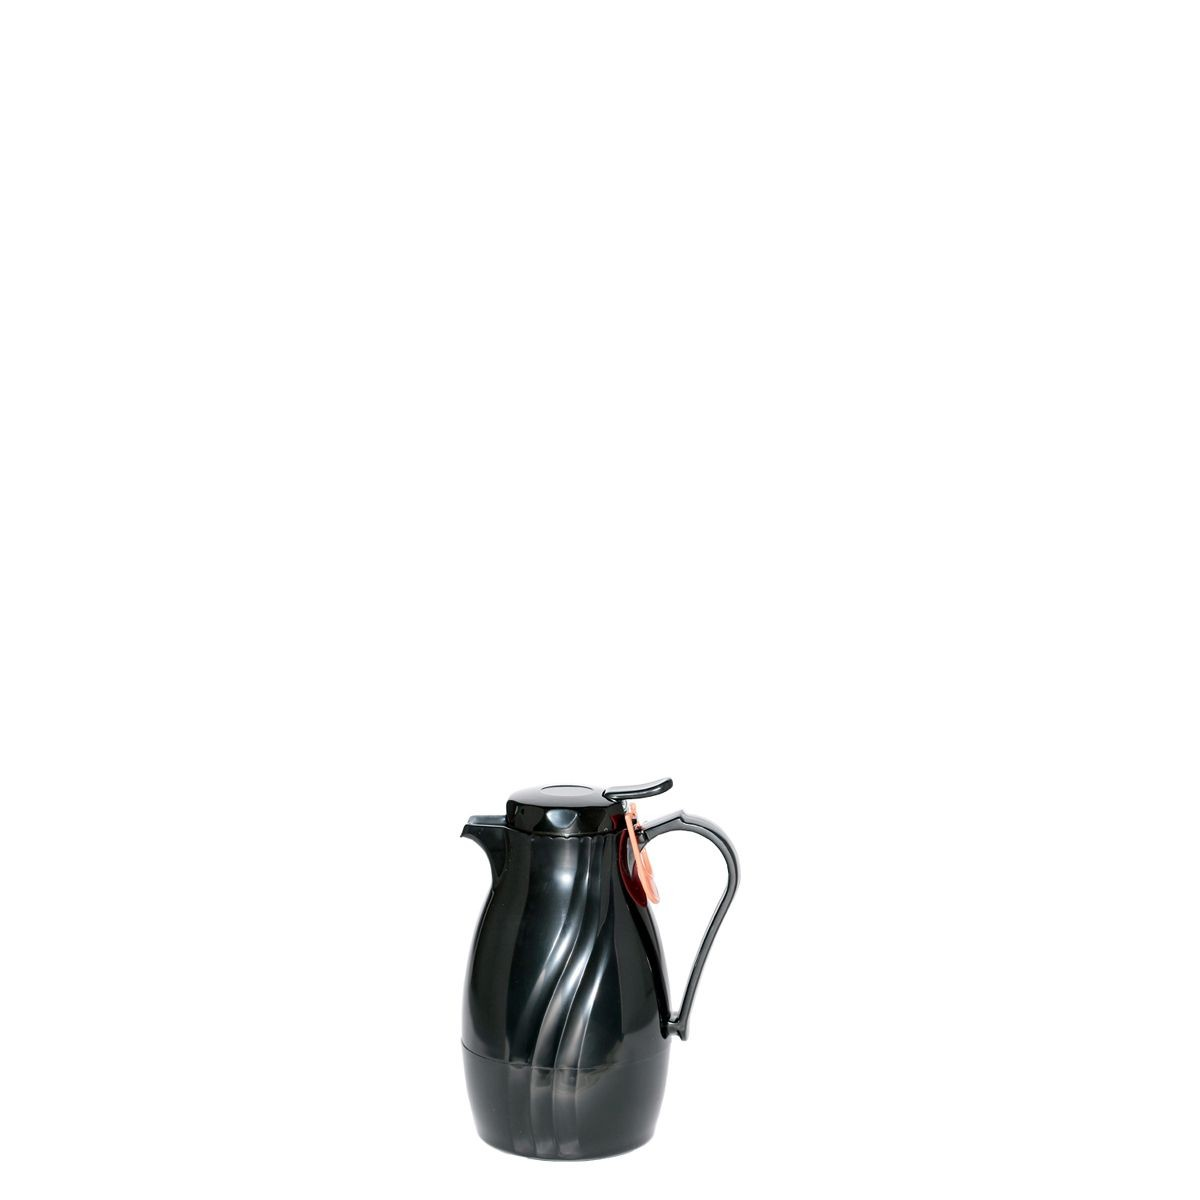 Service Ideas TNSPB20BL Twist N' Serv Push Button Server, Black 17 oz.